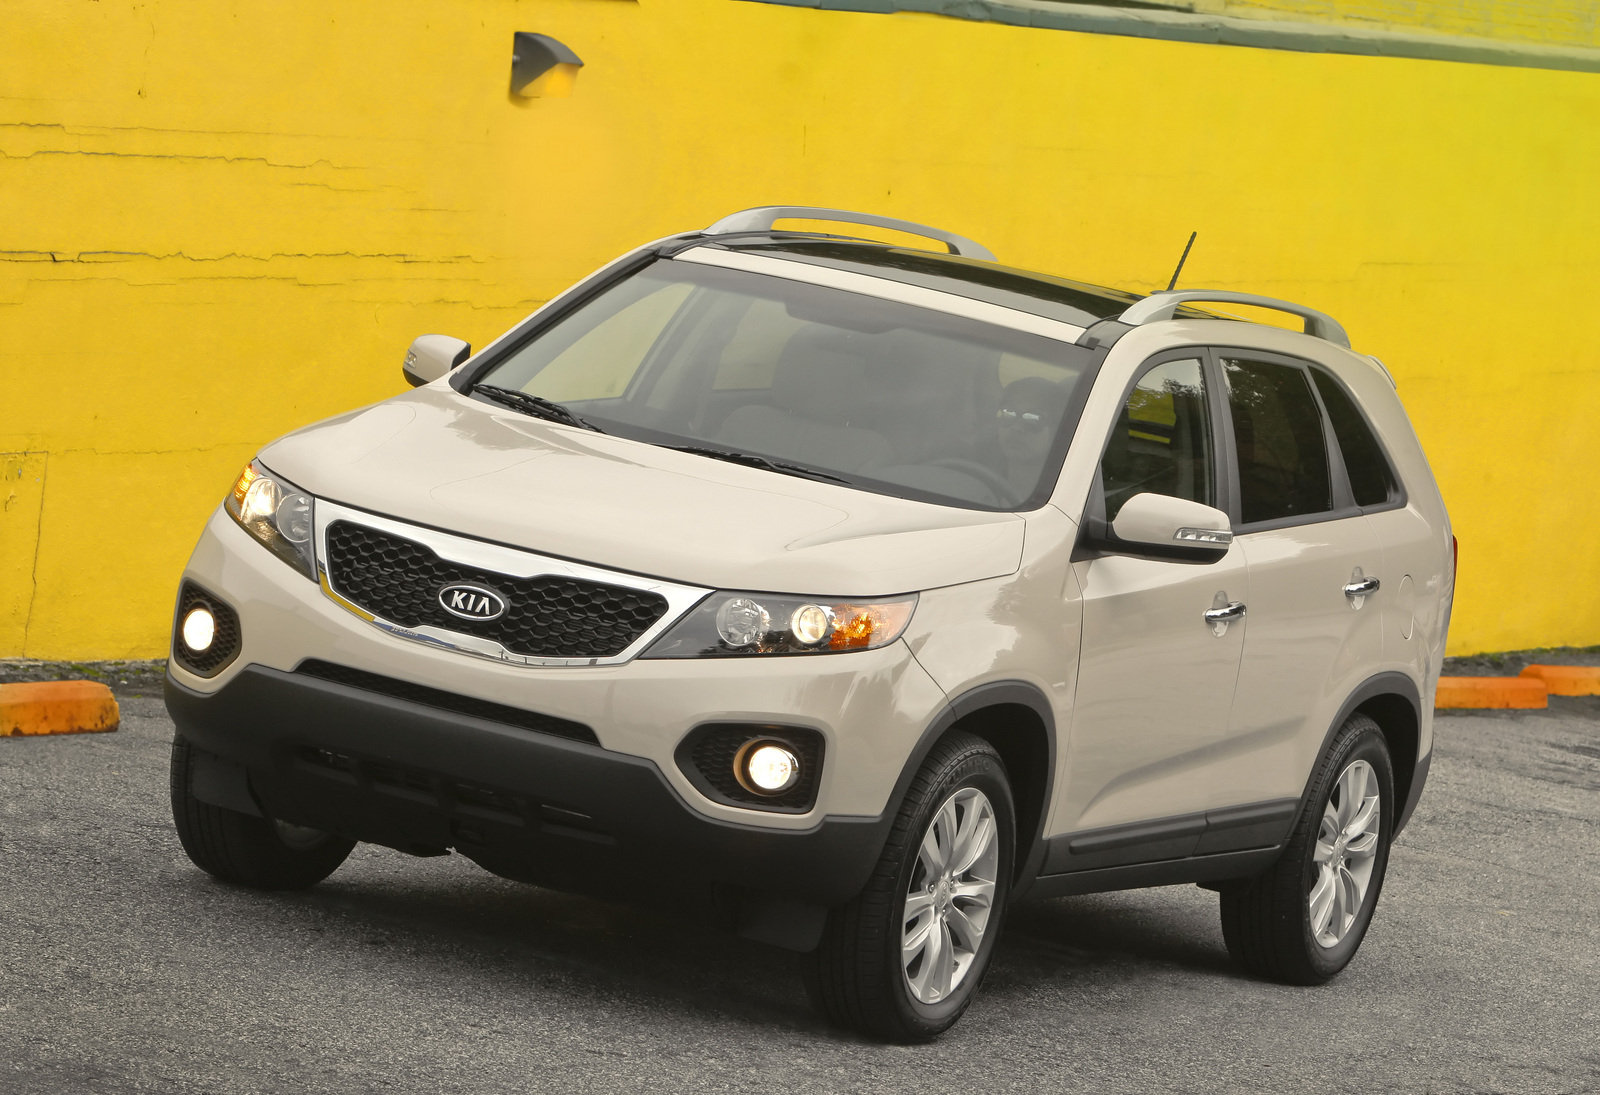 2011 kia sorento sx review top speed. Black Bedroom Furniture Sets. Home Design Ideas